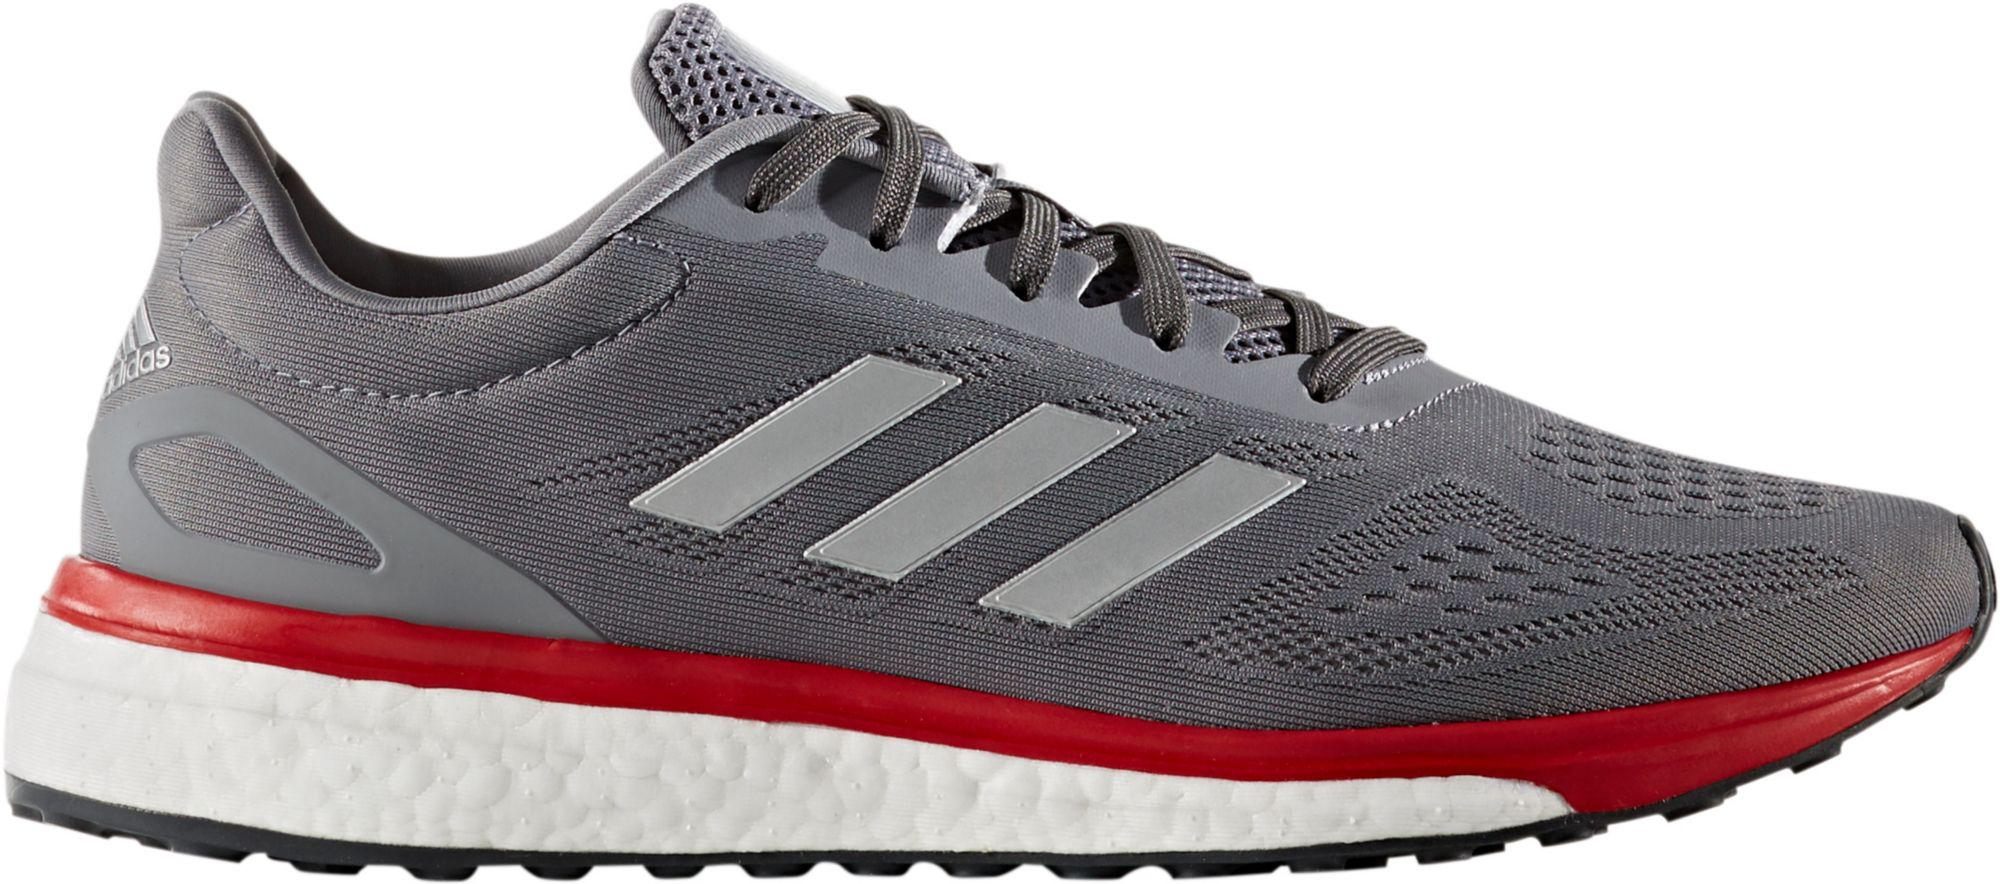 Adidas Men S Sonic Drive Running Shoes